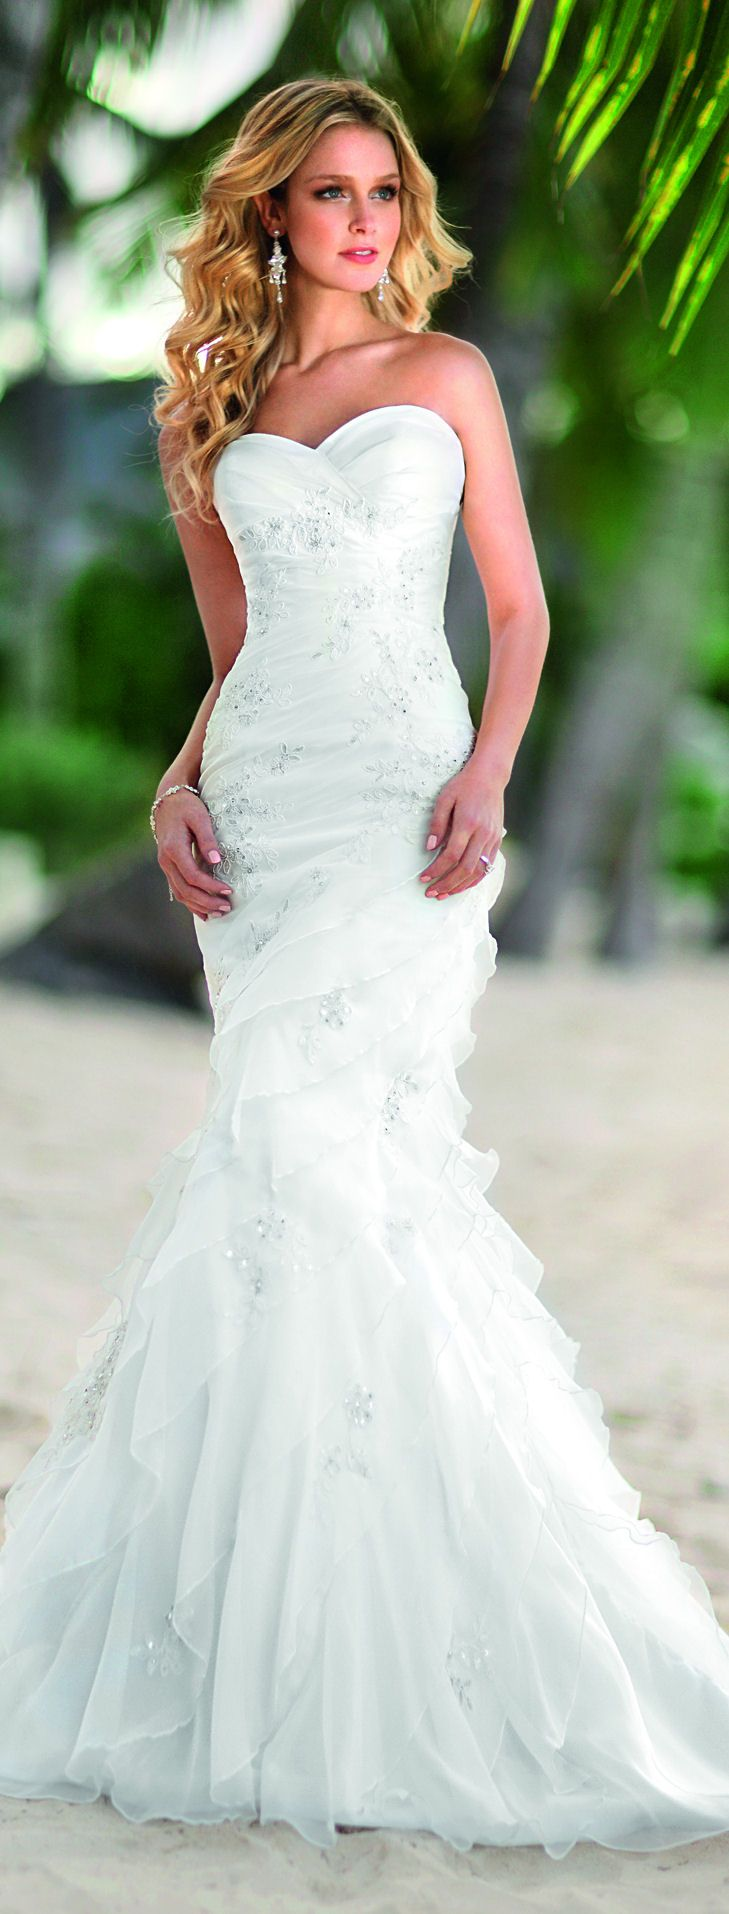 Sweetheart Ruffle Wedding Gown ♥